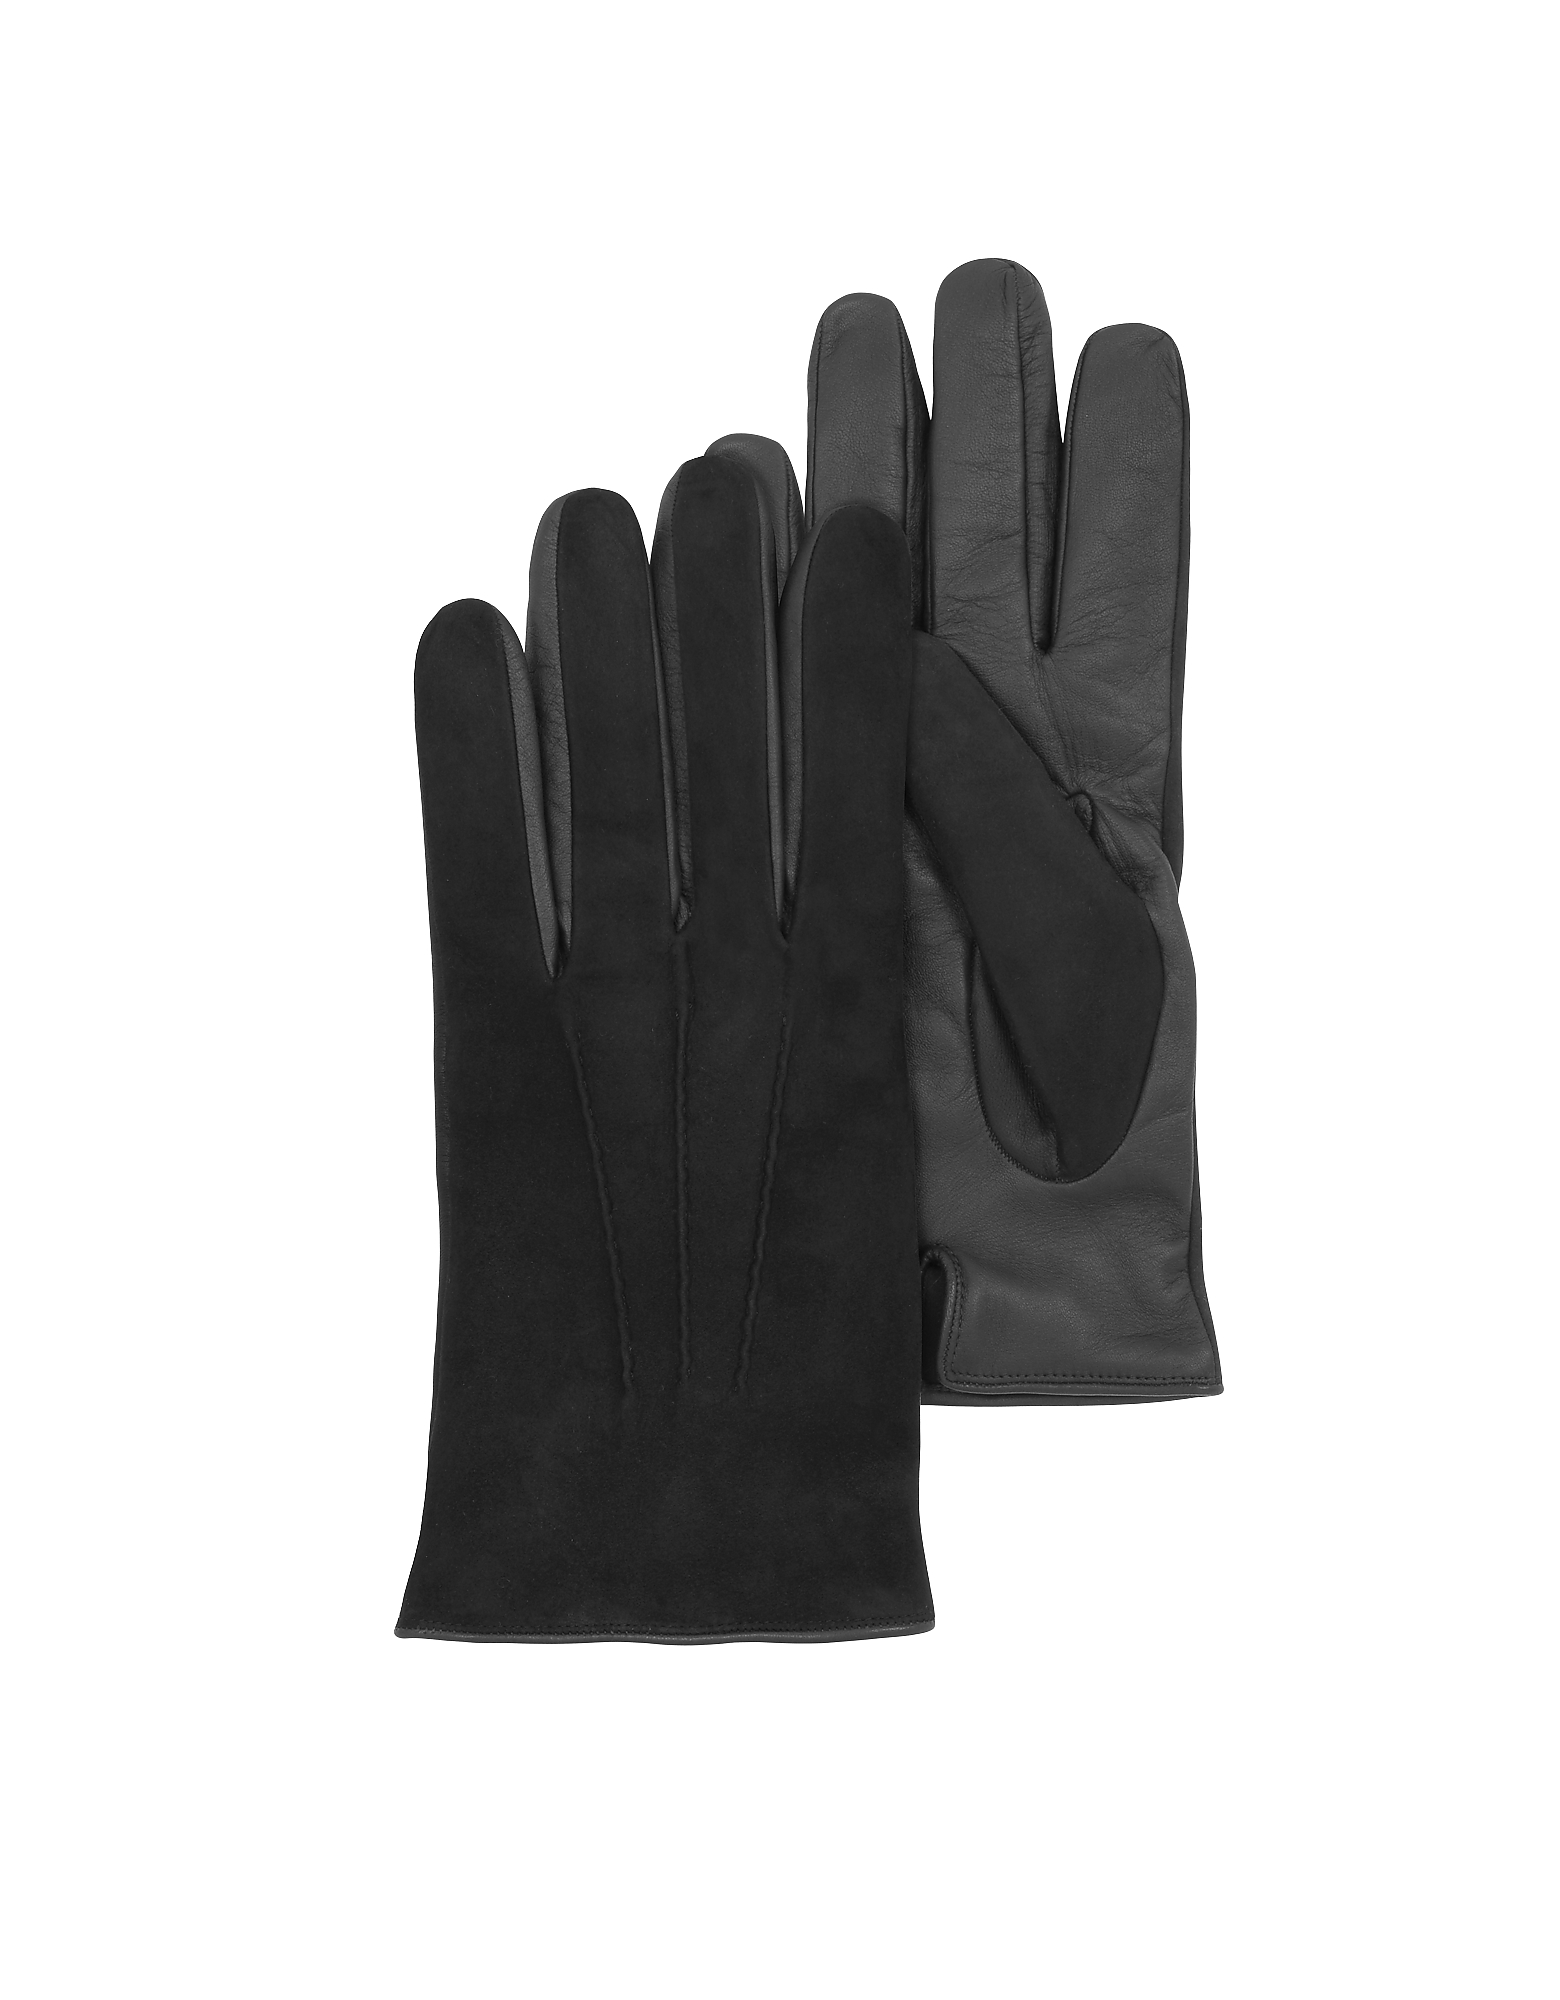 Forzieri Men's Gloves, Black Touch Screen Leather Men's Gloves